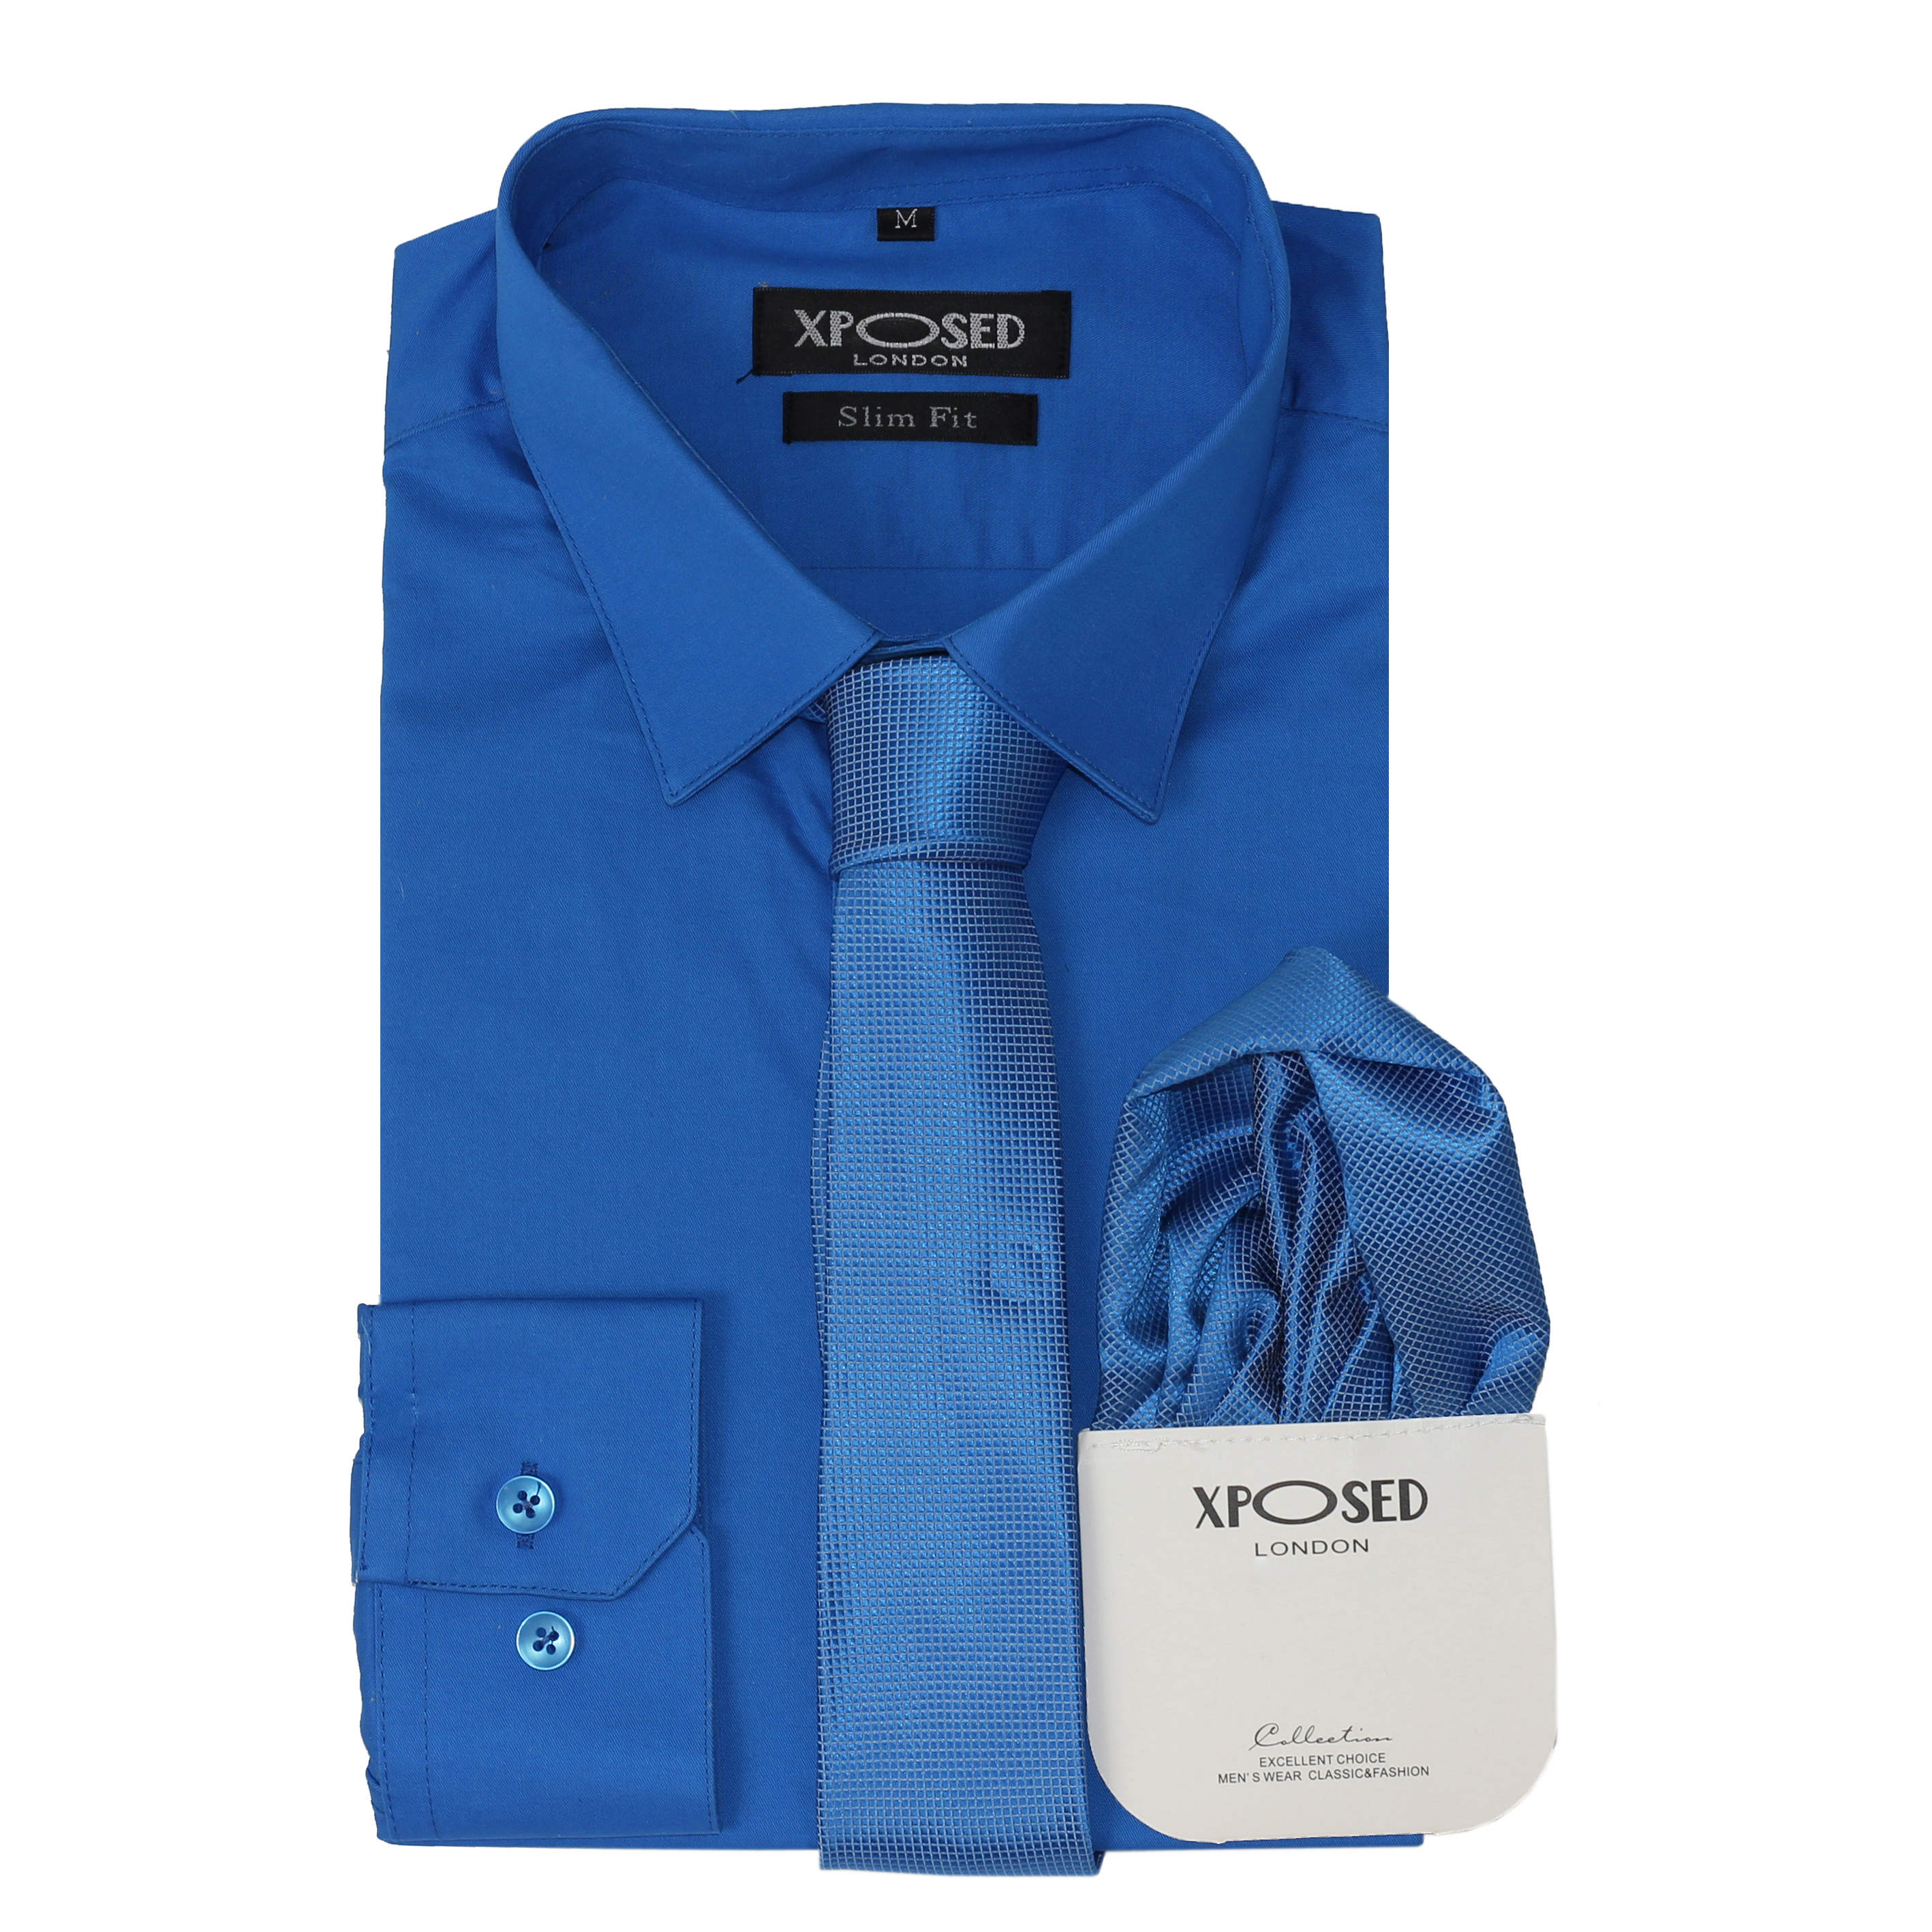 ee7c06b2660 Mens Classic Cotton Slim Fit Dress Shirt Tie Hanky Gift Set Smart Casual  Work 5xl Royal Blue. About this product. Picture 1 of 5  Picture 2 of 5   Picture 3 ...